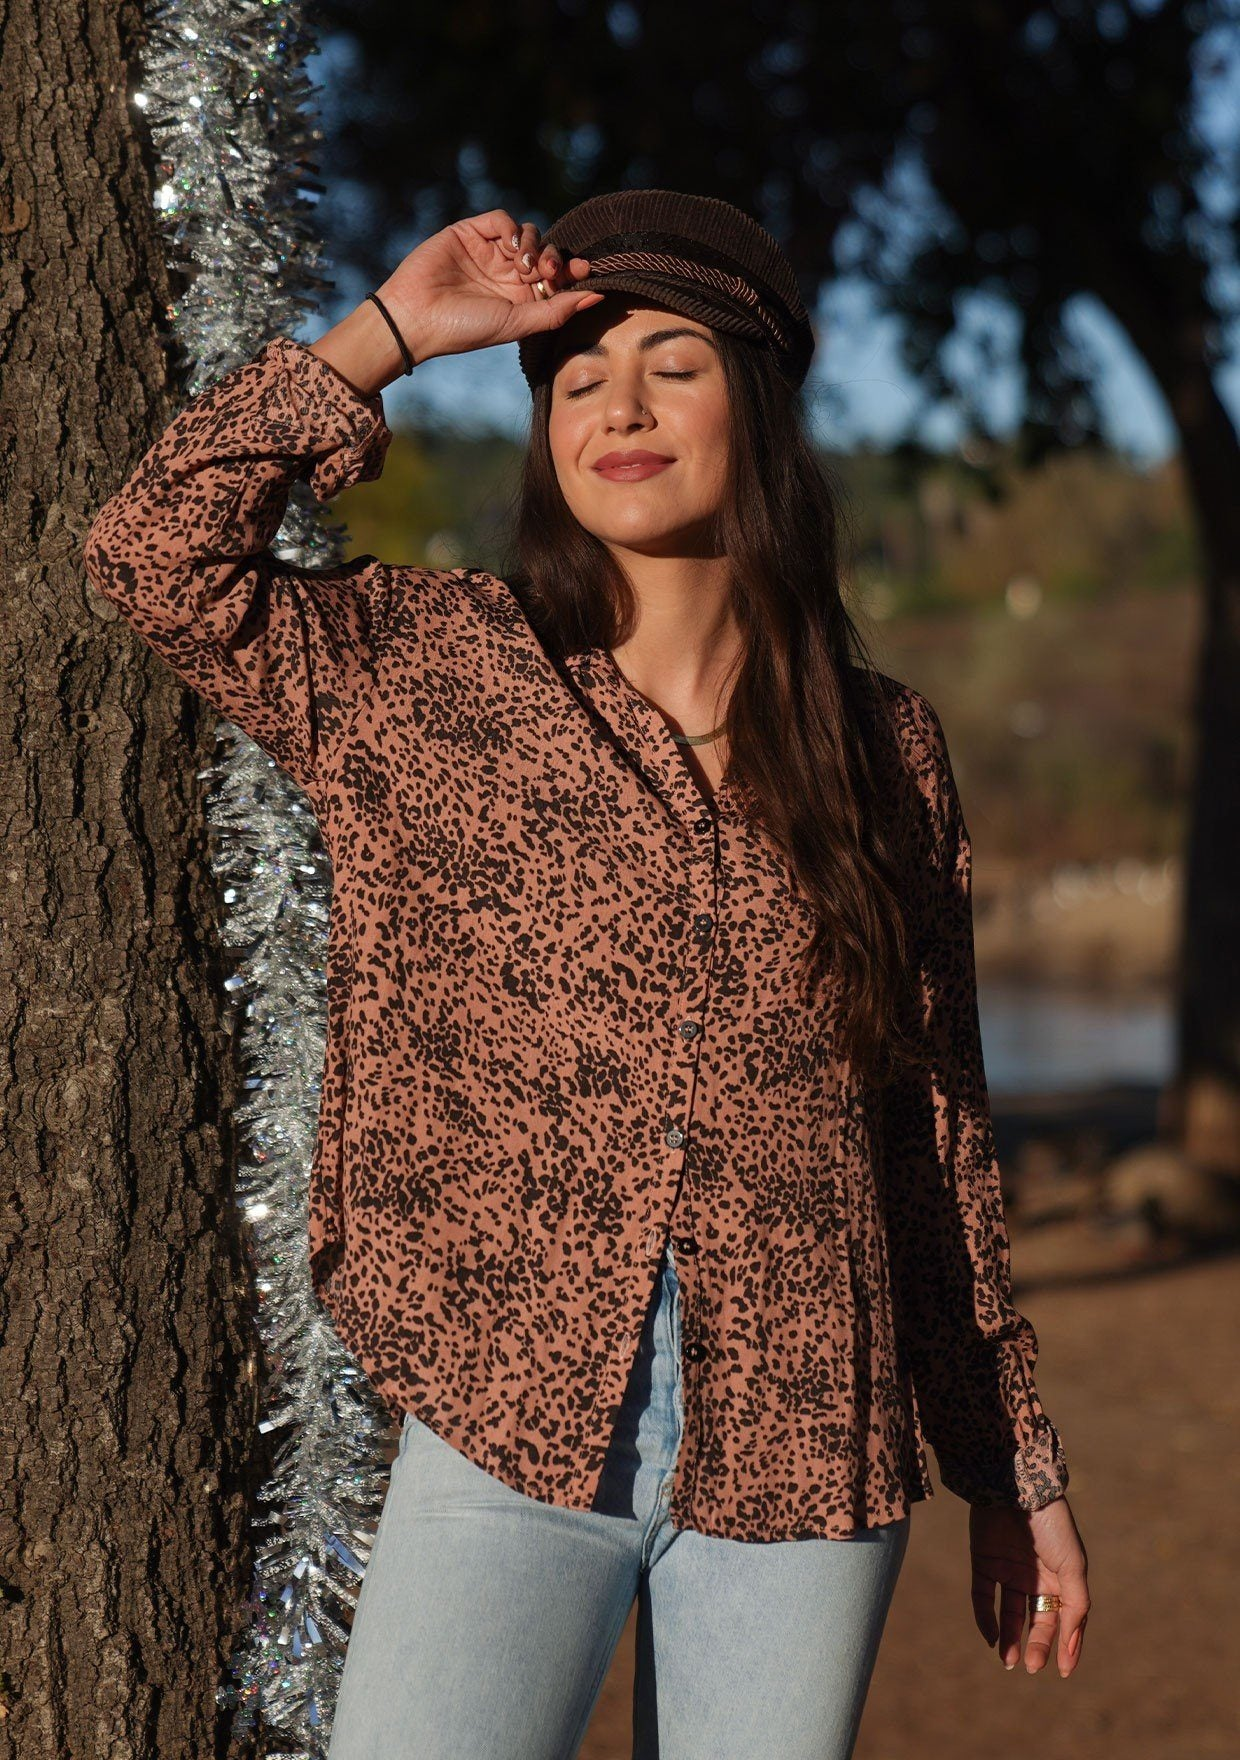 [Color: Hazel Black] Button up blouse in an abstract animal print. An elegant style featuring a flattering oversize relaxed fit, a button cuff wrist, and a breezy double keyhole detail at the back. Pair it with jeans for a casual vibe, or dress it up with a skirt for a bohemian chic look.